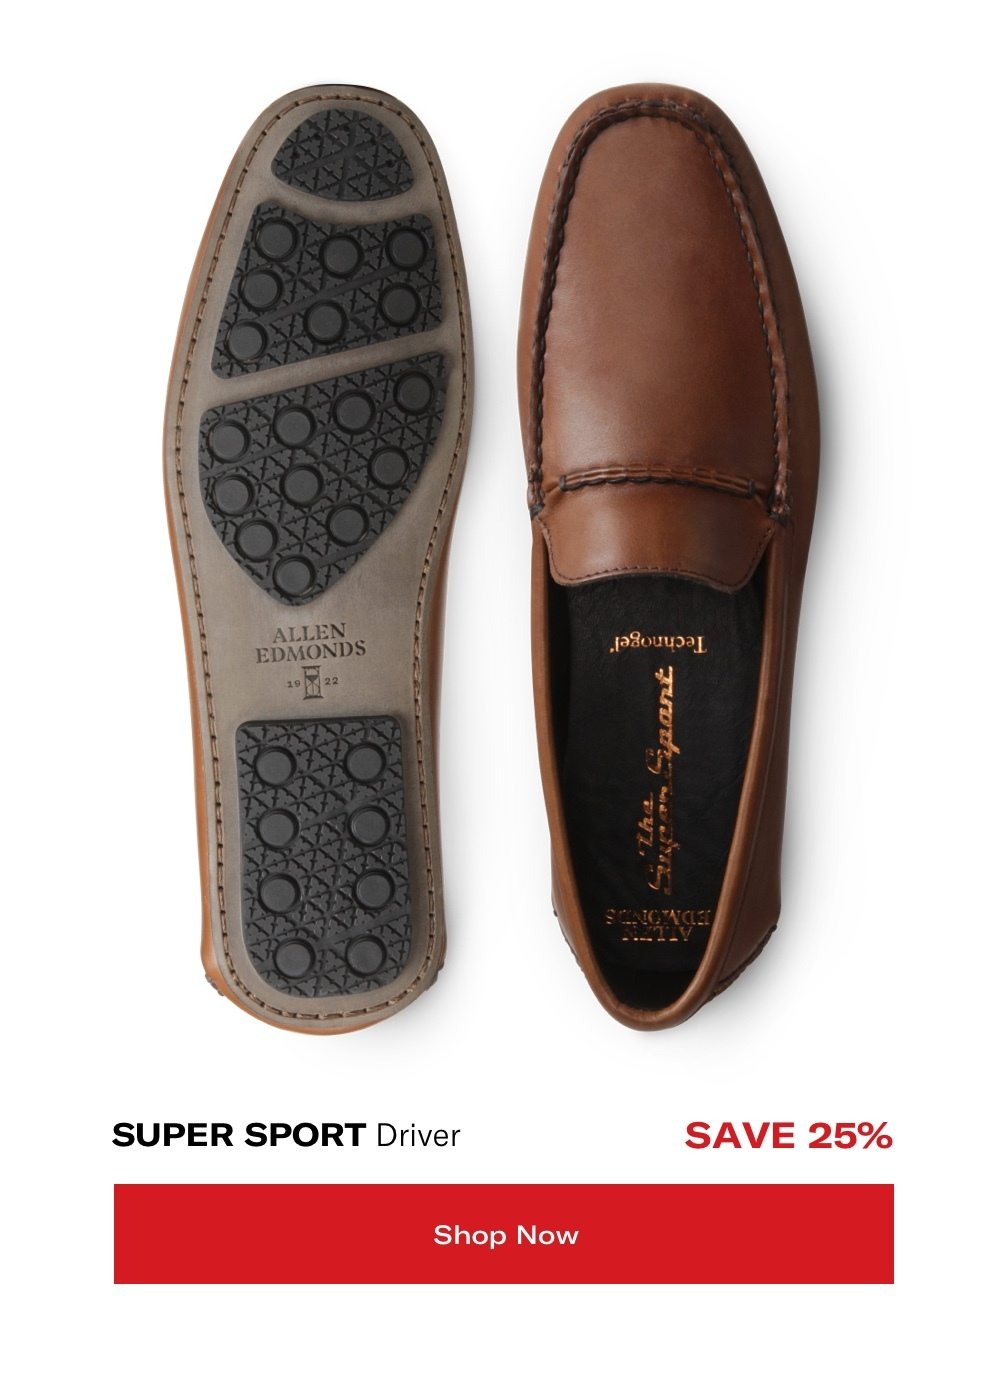 Shop Super Sport Driver - Save 25%